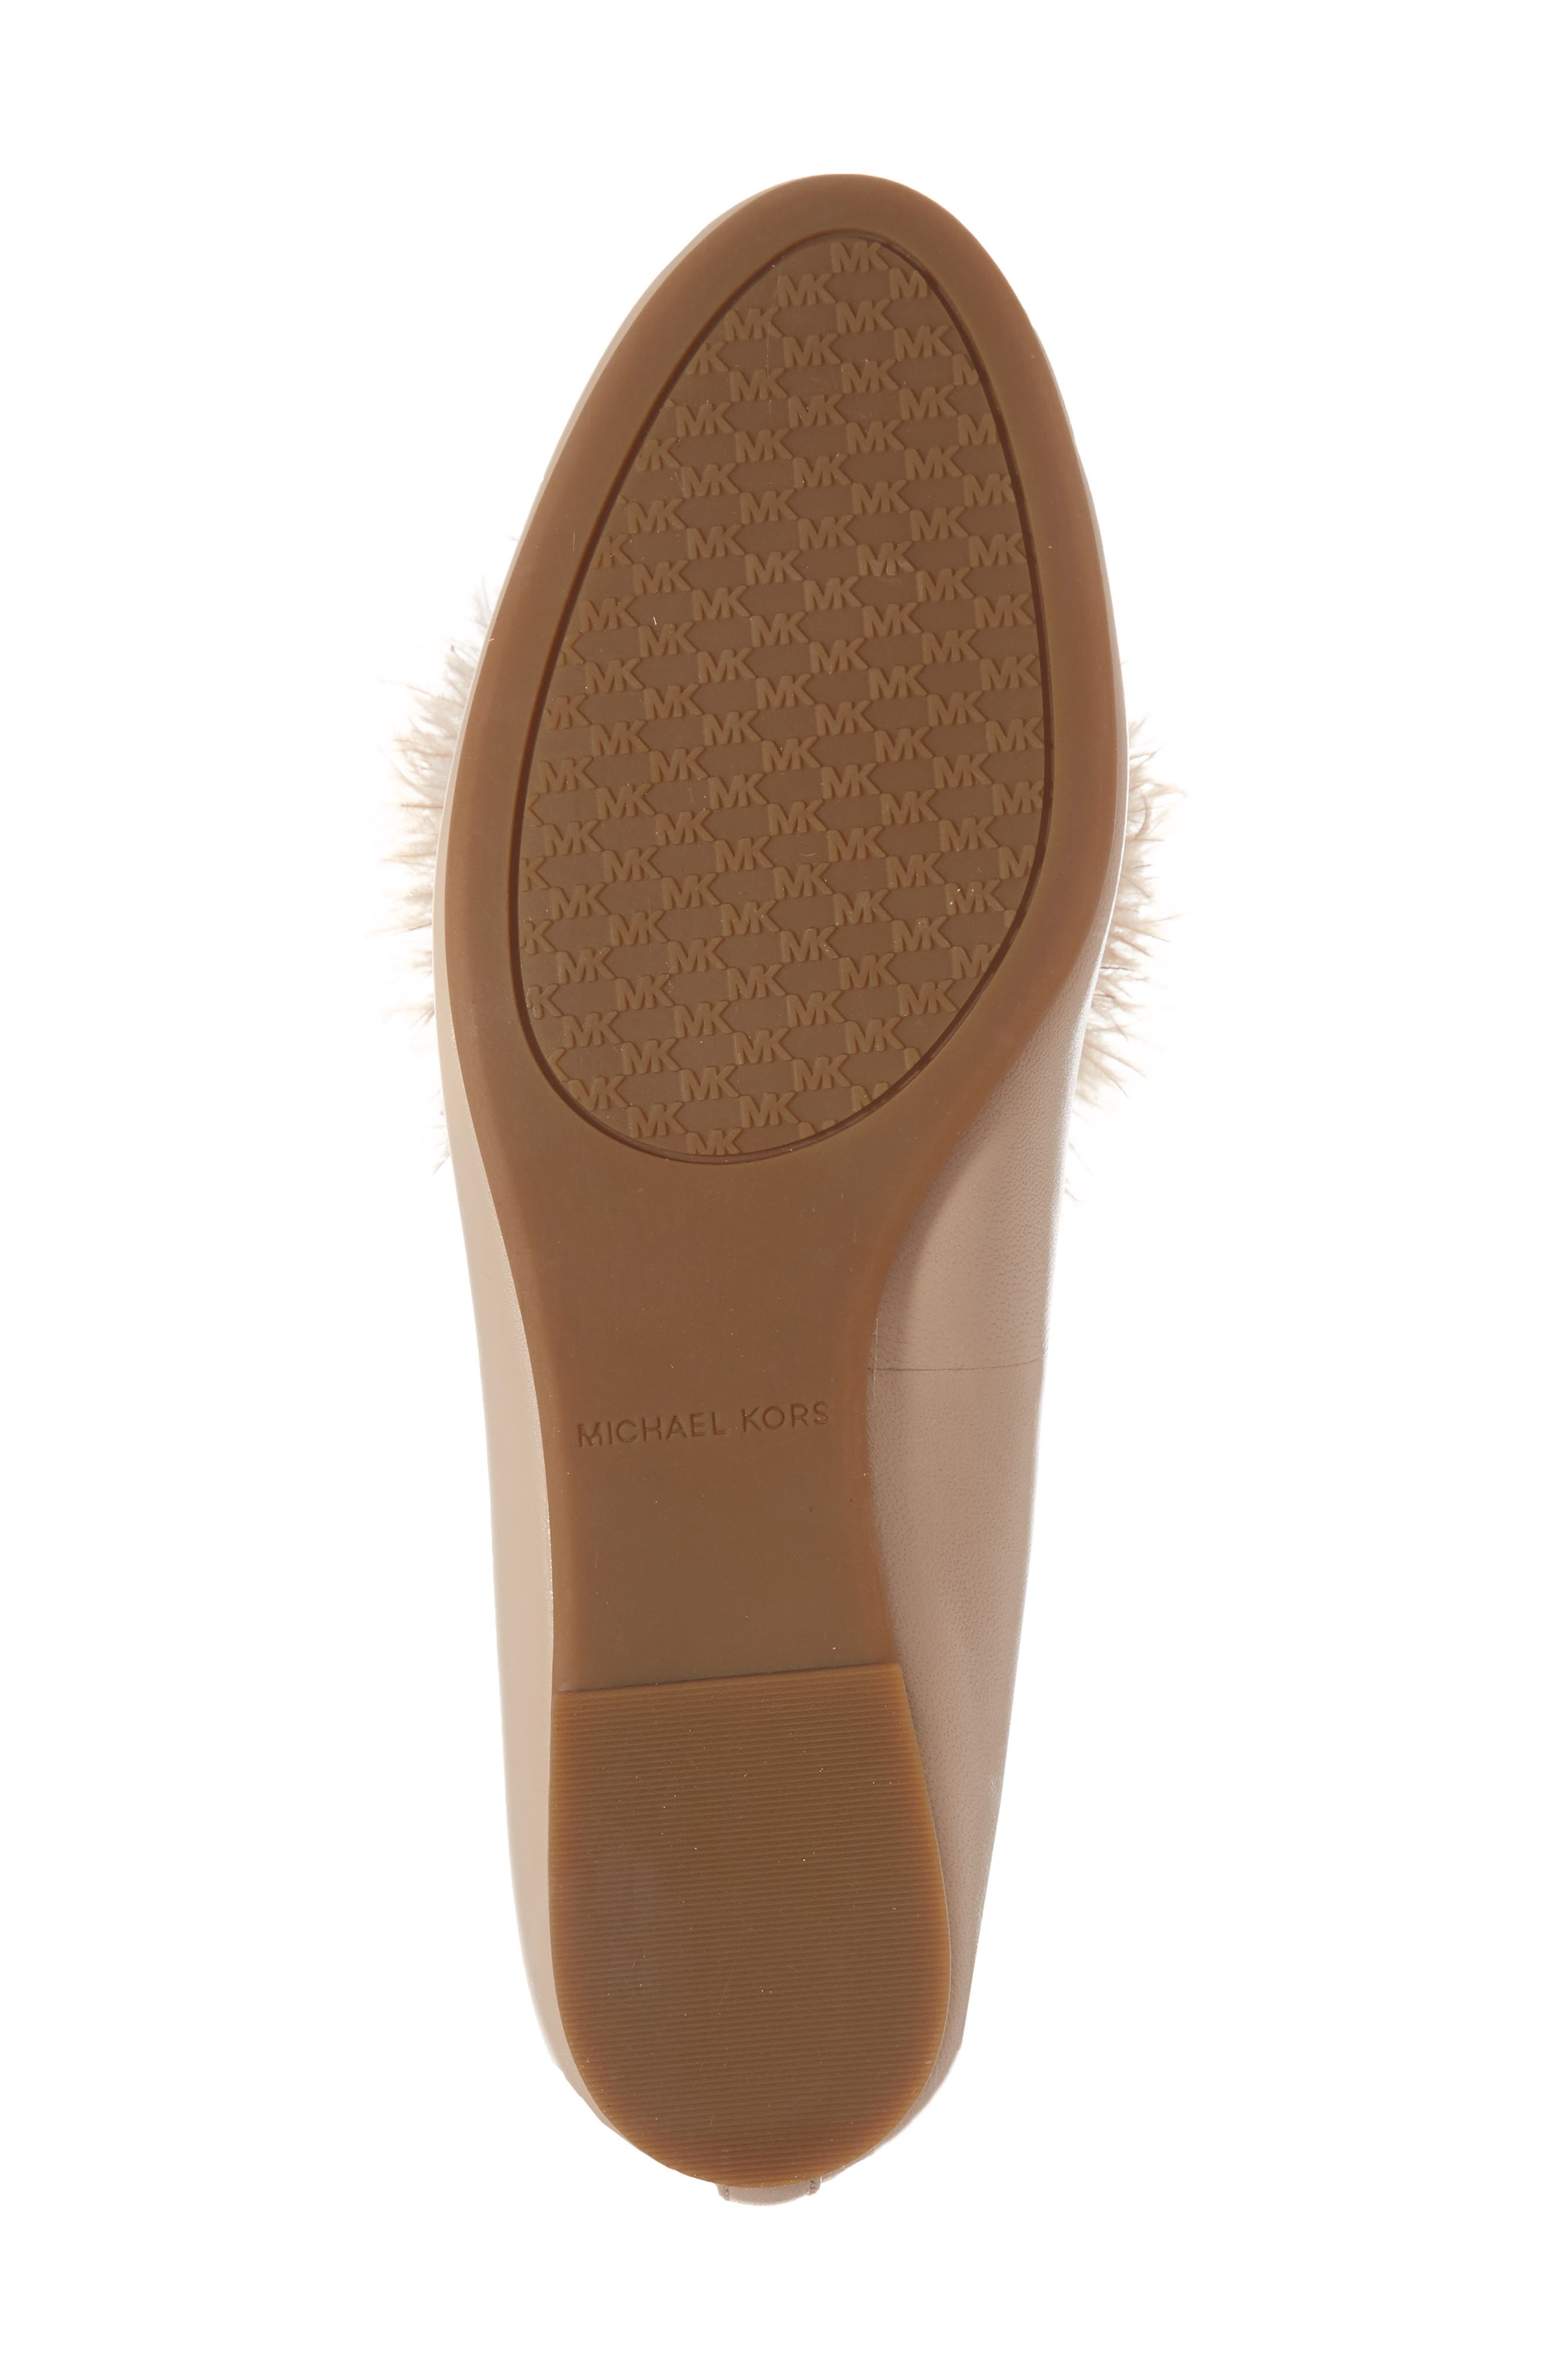 Fara Feather Pom Loafer,                             Alternate thumbnail 6, color,                             Oyster Nappa Leather